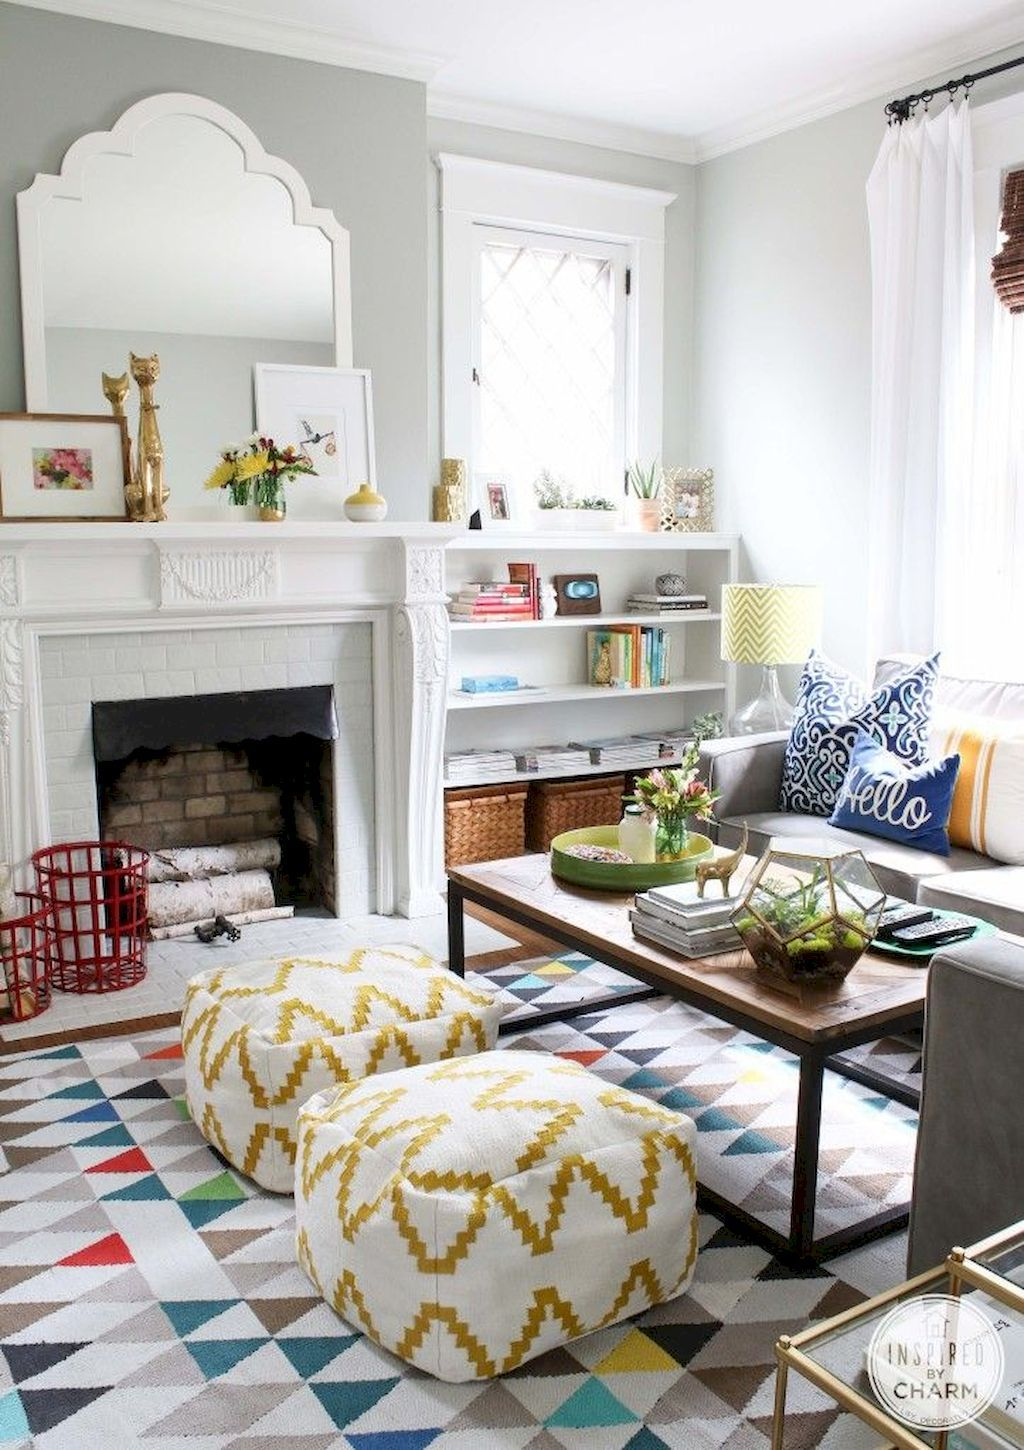 65 Stunning Small Living Room Decor Ideas on a Budget   Small living ...